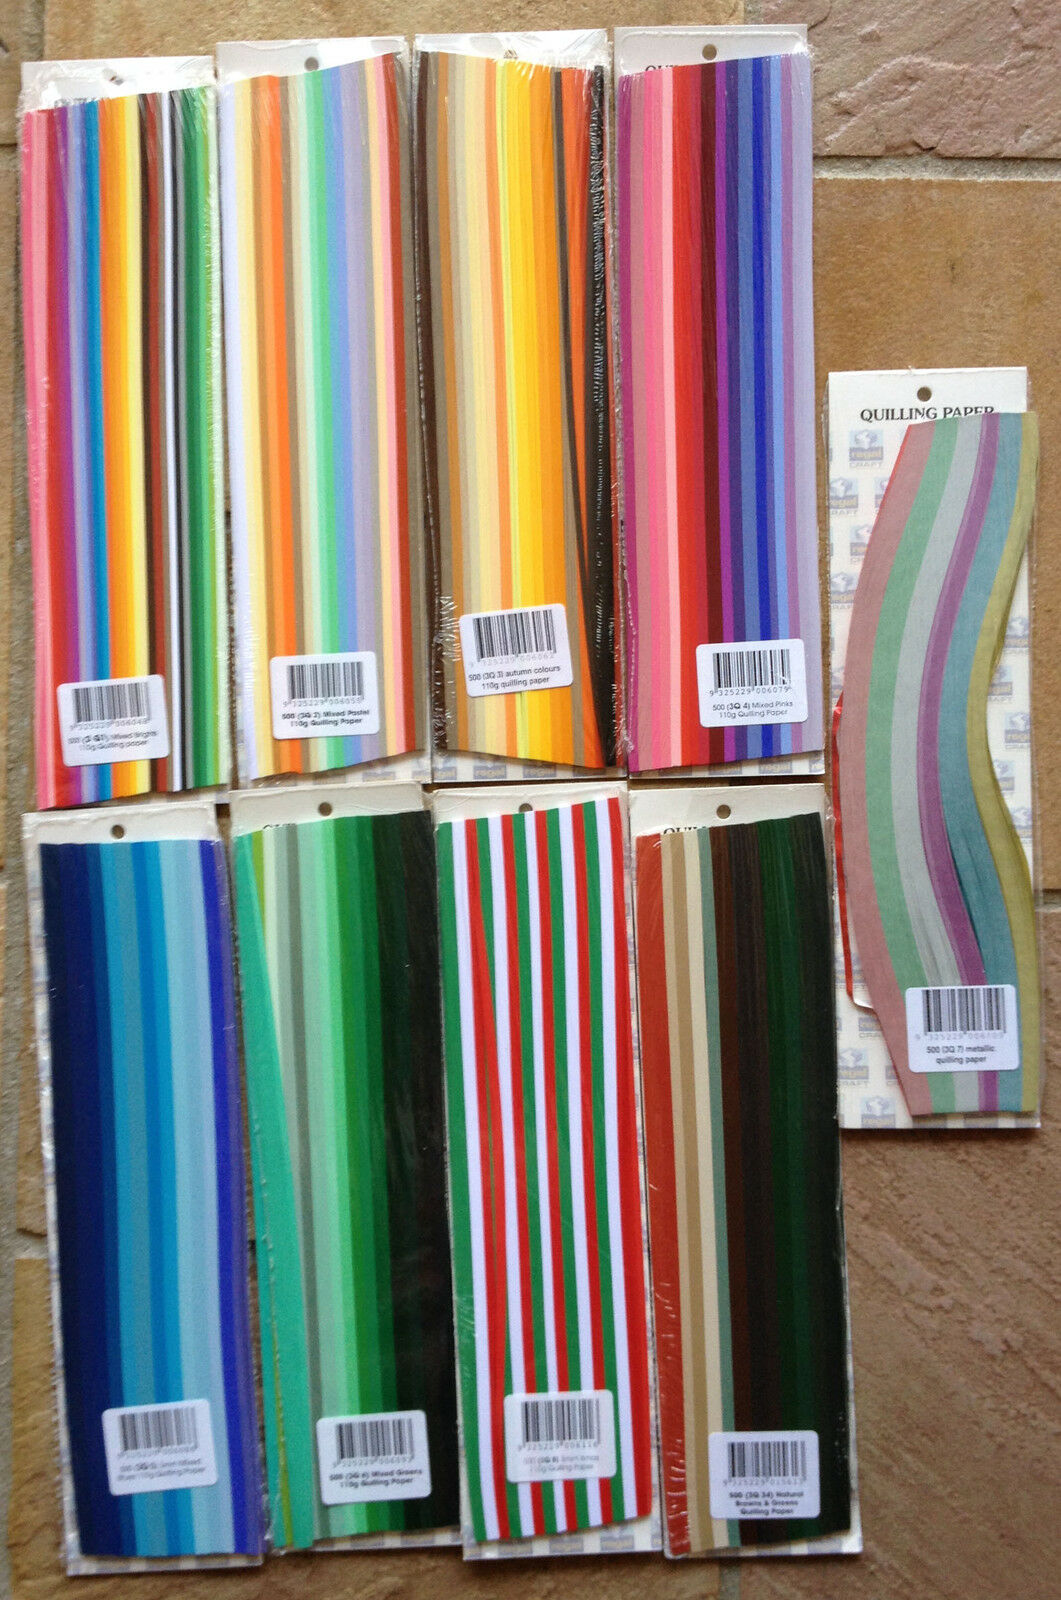 500 Strips 6mm Quilling Paper (110GSM) 9 multicolor & 30 single colors U select